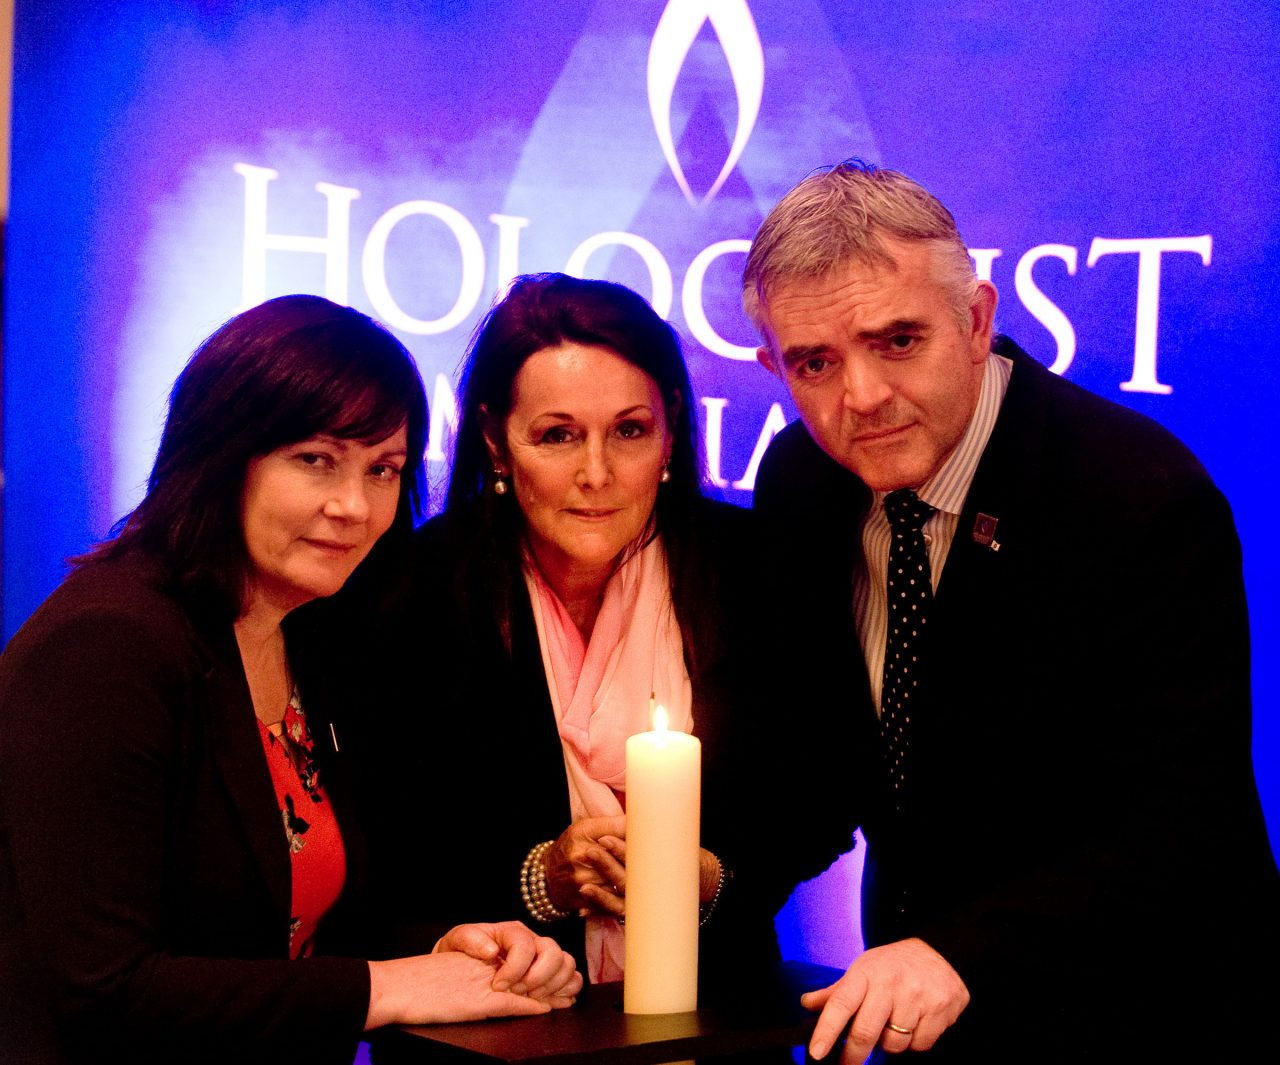 Belfast hosts Northern Ireland's national Holocaust Memorial Day event